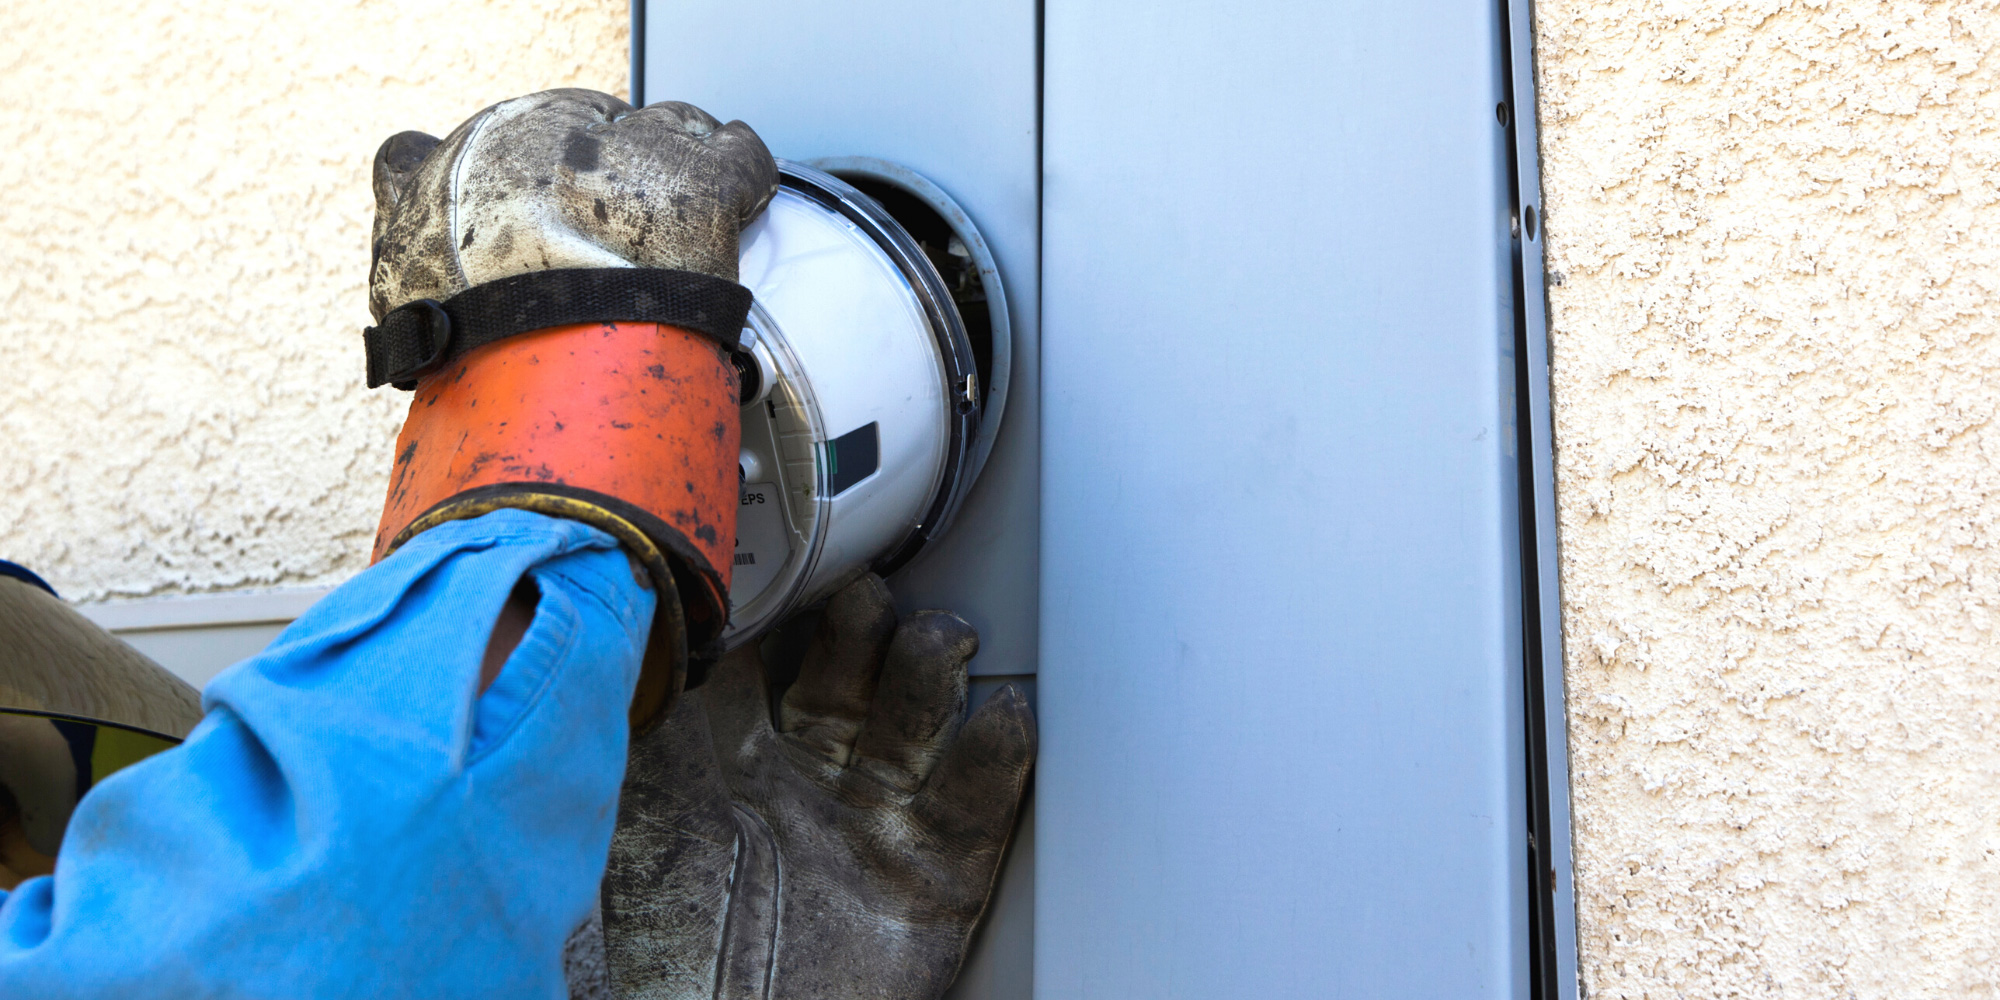 Electricty and gas smart meter installation appointment customer feedback best practices